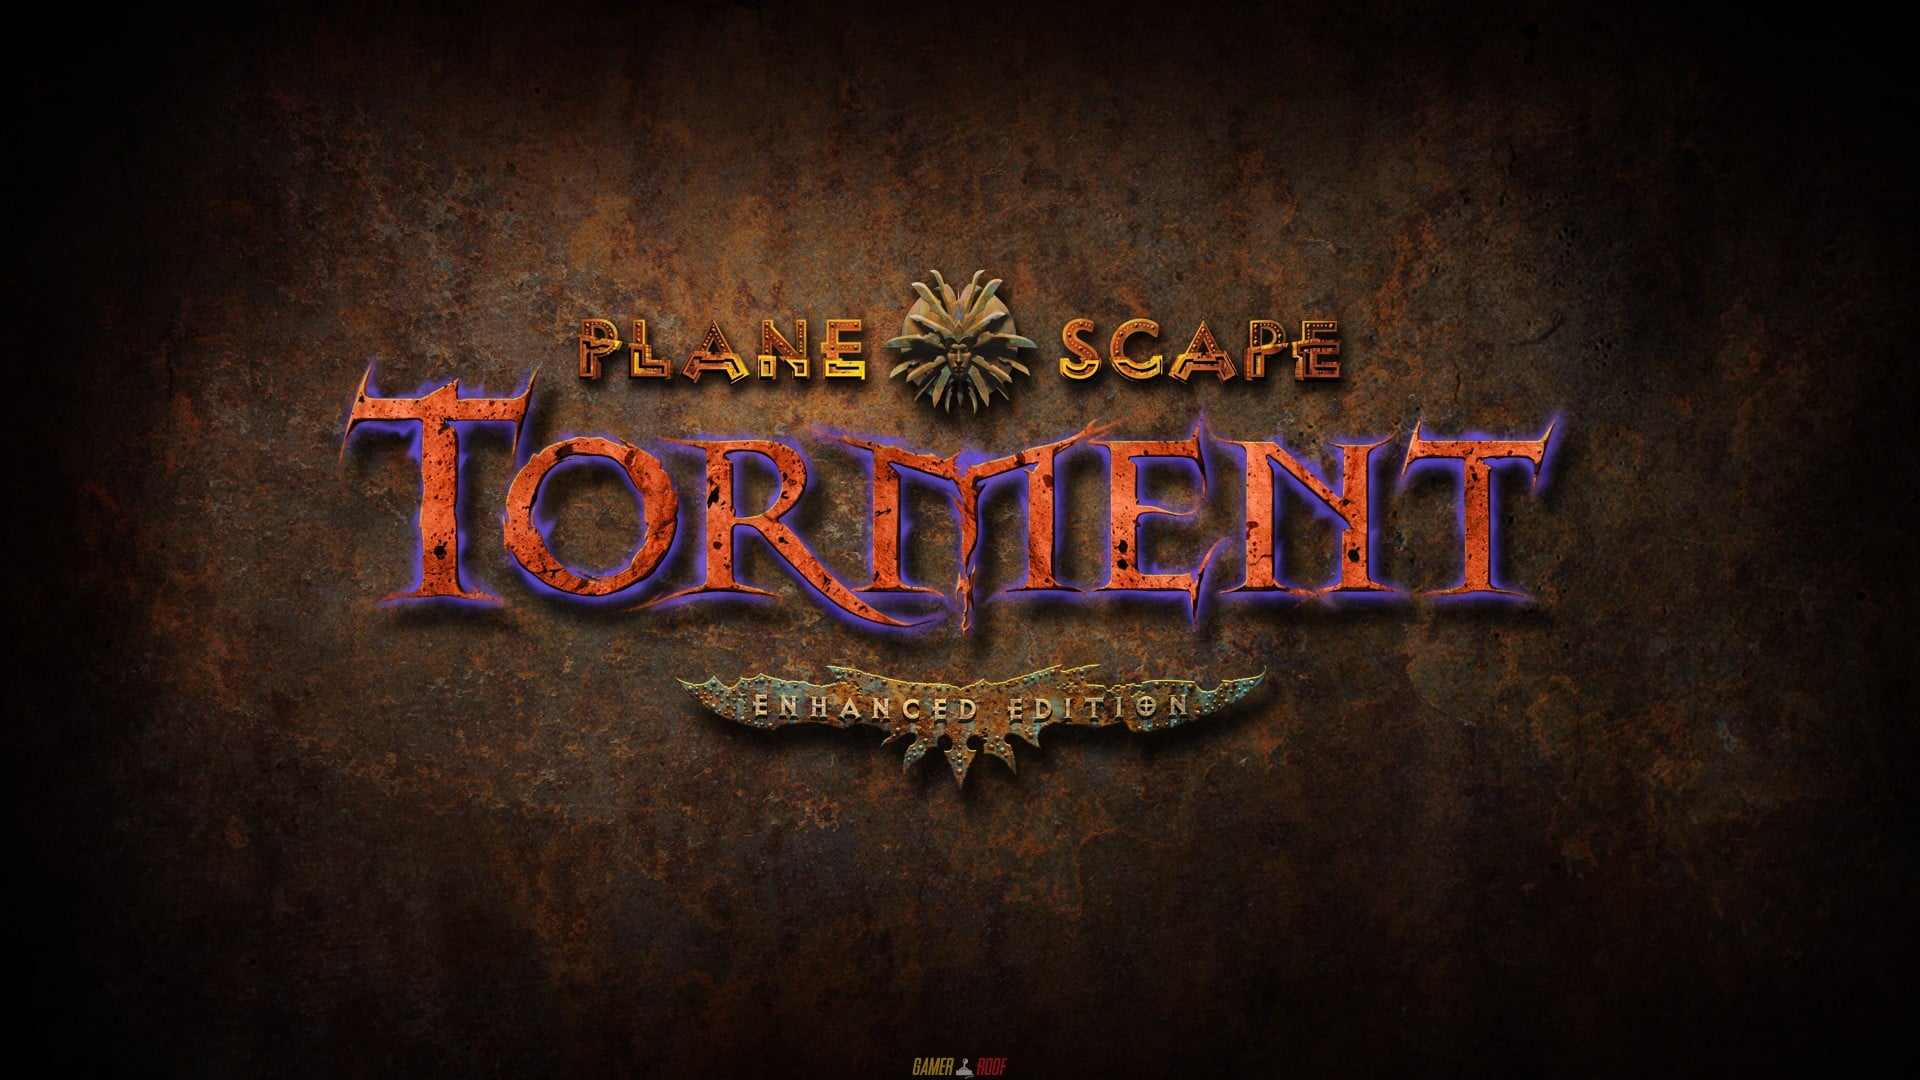 Planescape Torment Enhanced Edition PC Version Review Full Game Free Download 2019